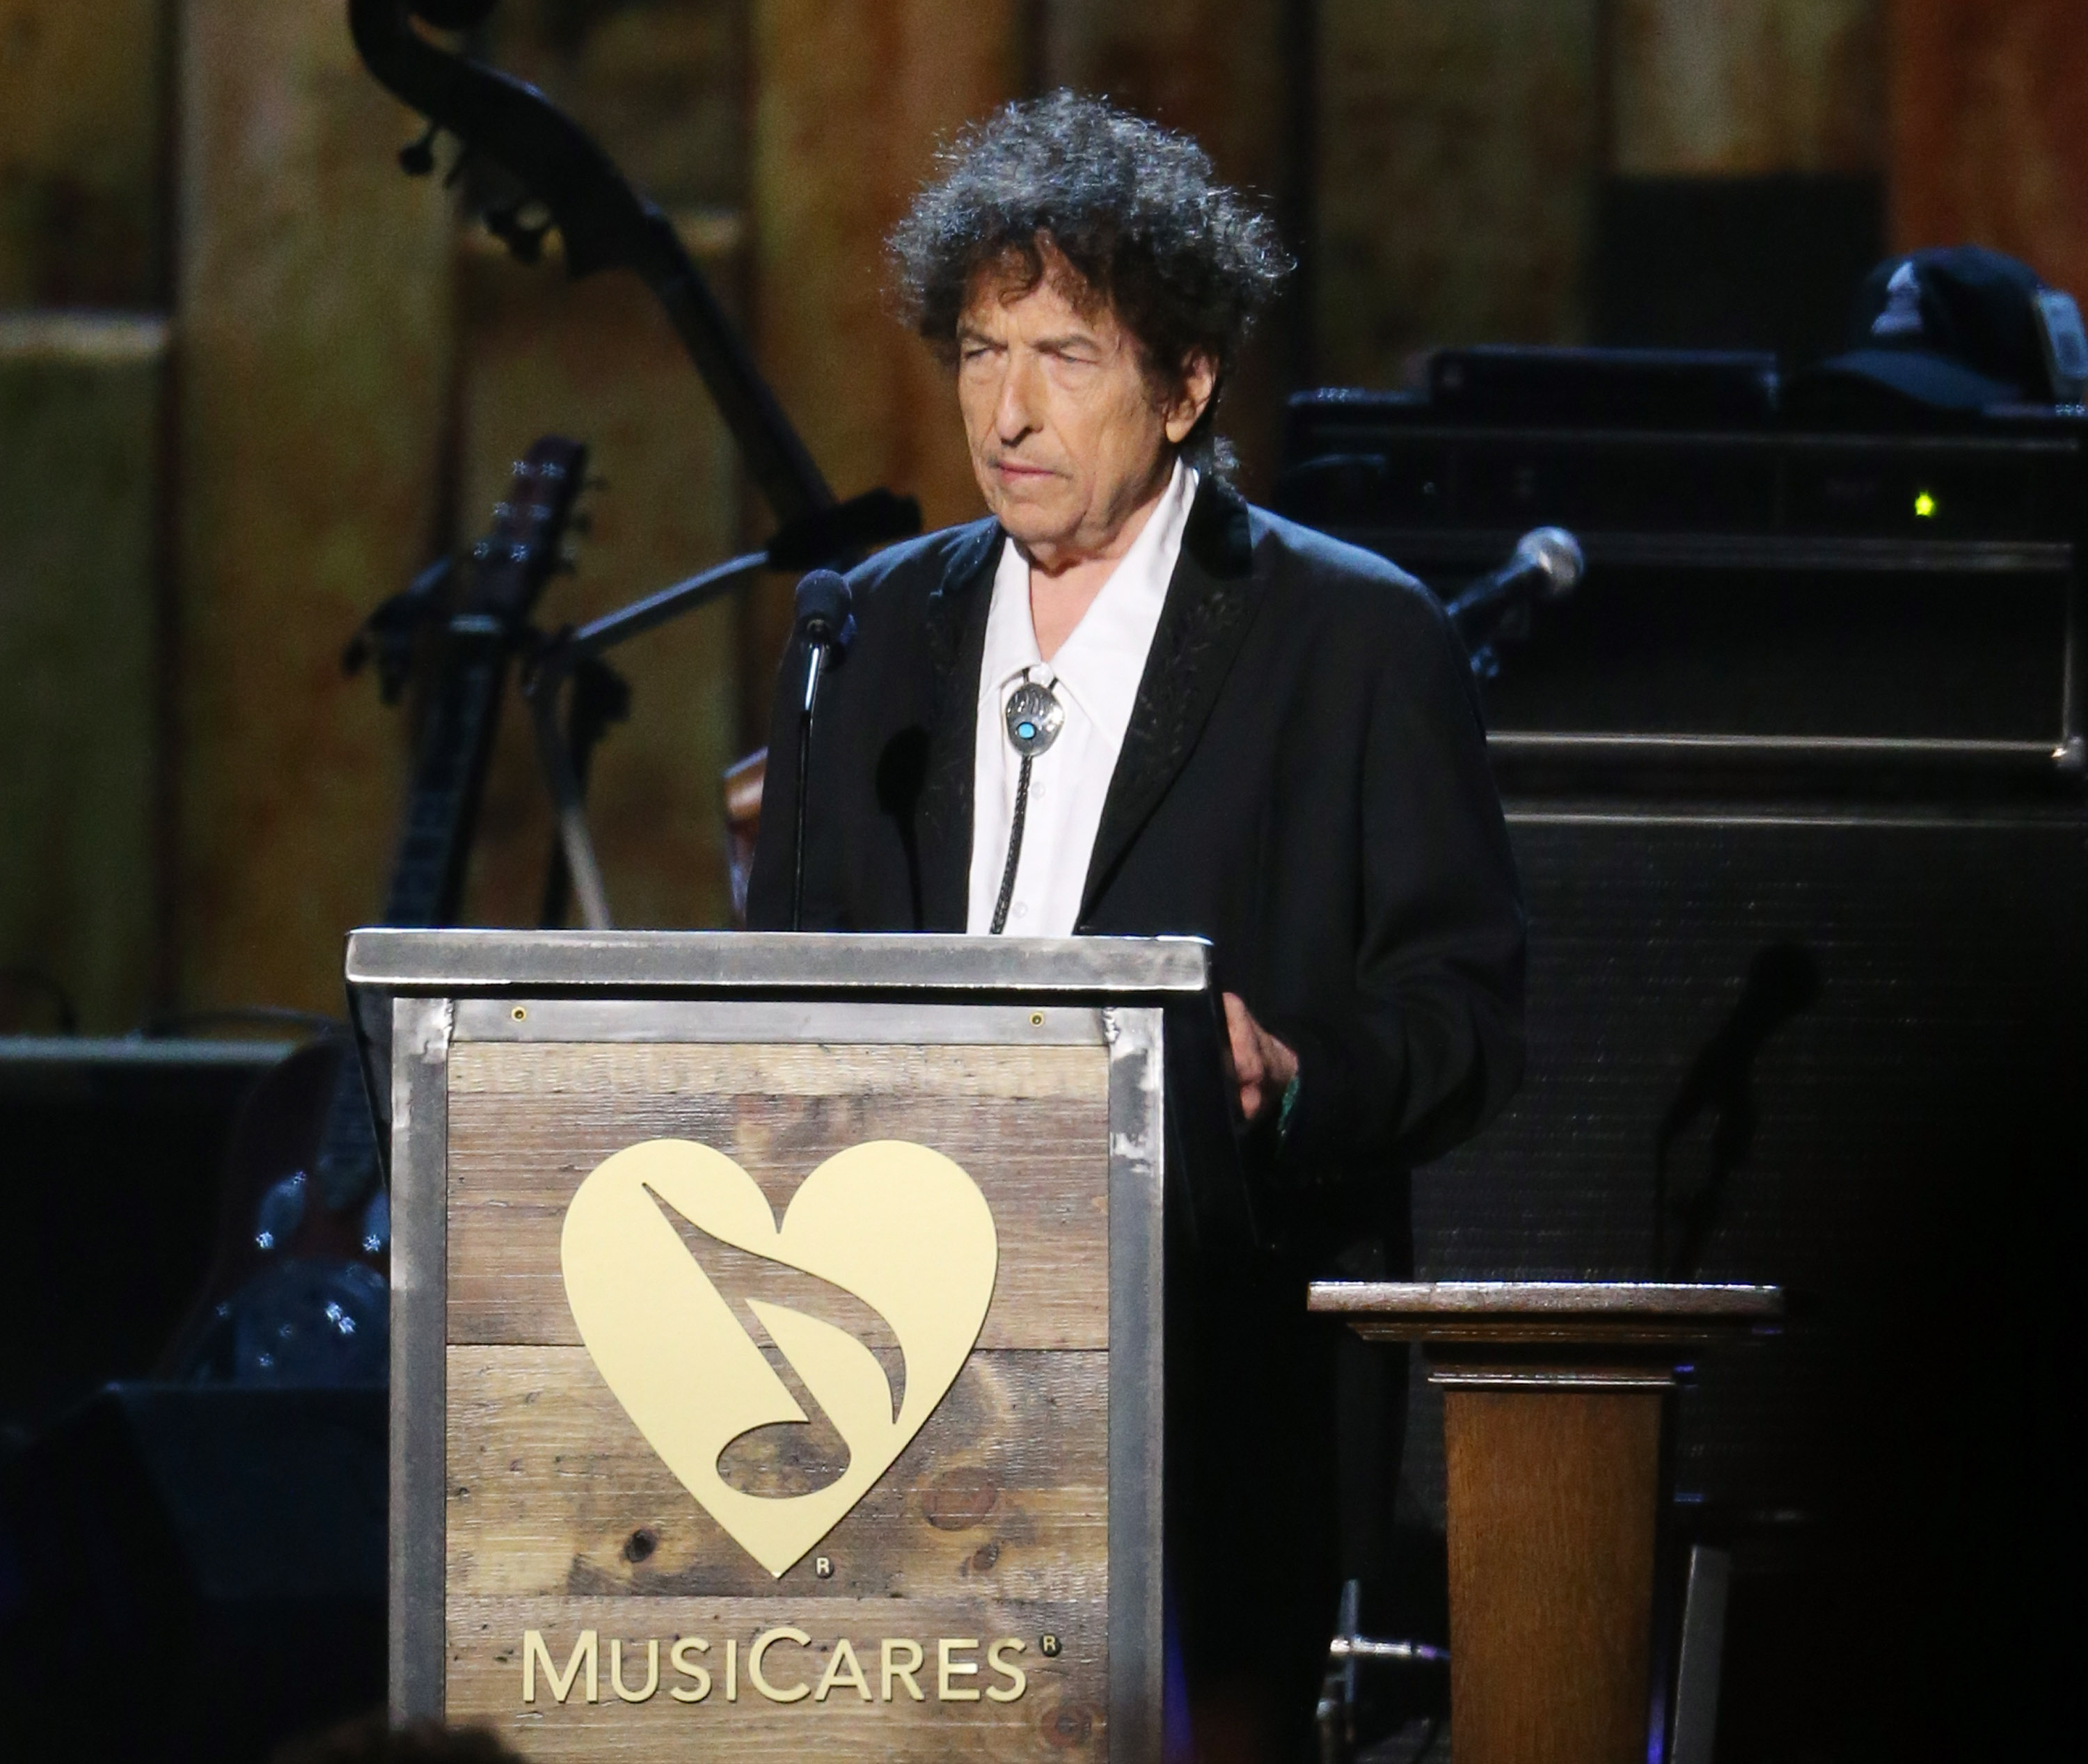 LOS ANGELES, CA - FEBRUARY 06:  Bob Dylan speaks onstage during the 2015 MusiCares Person of The Year honoring him held at Lo